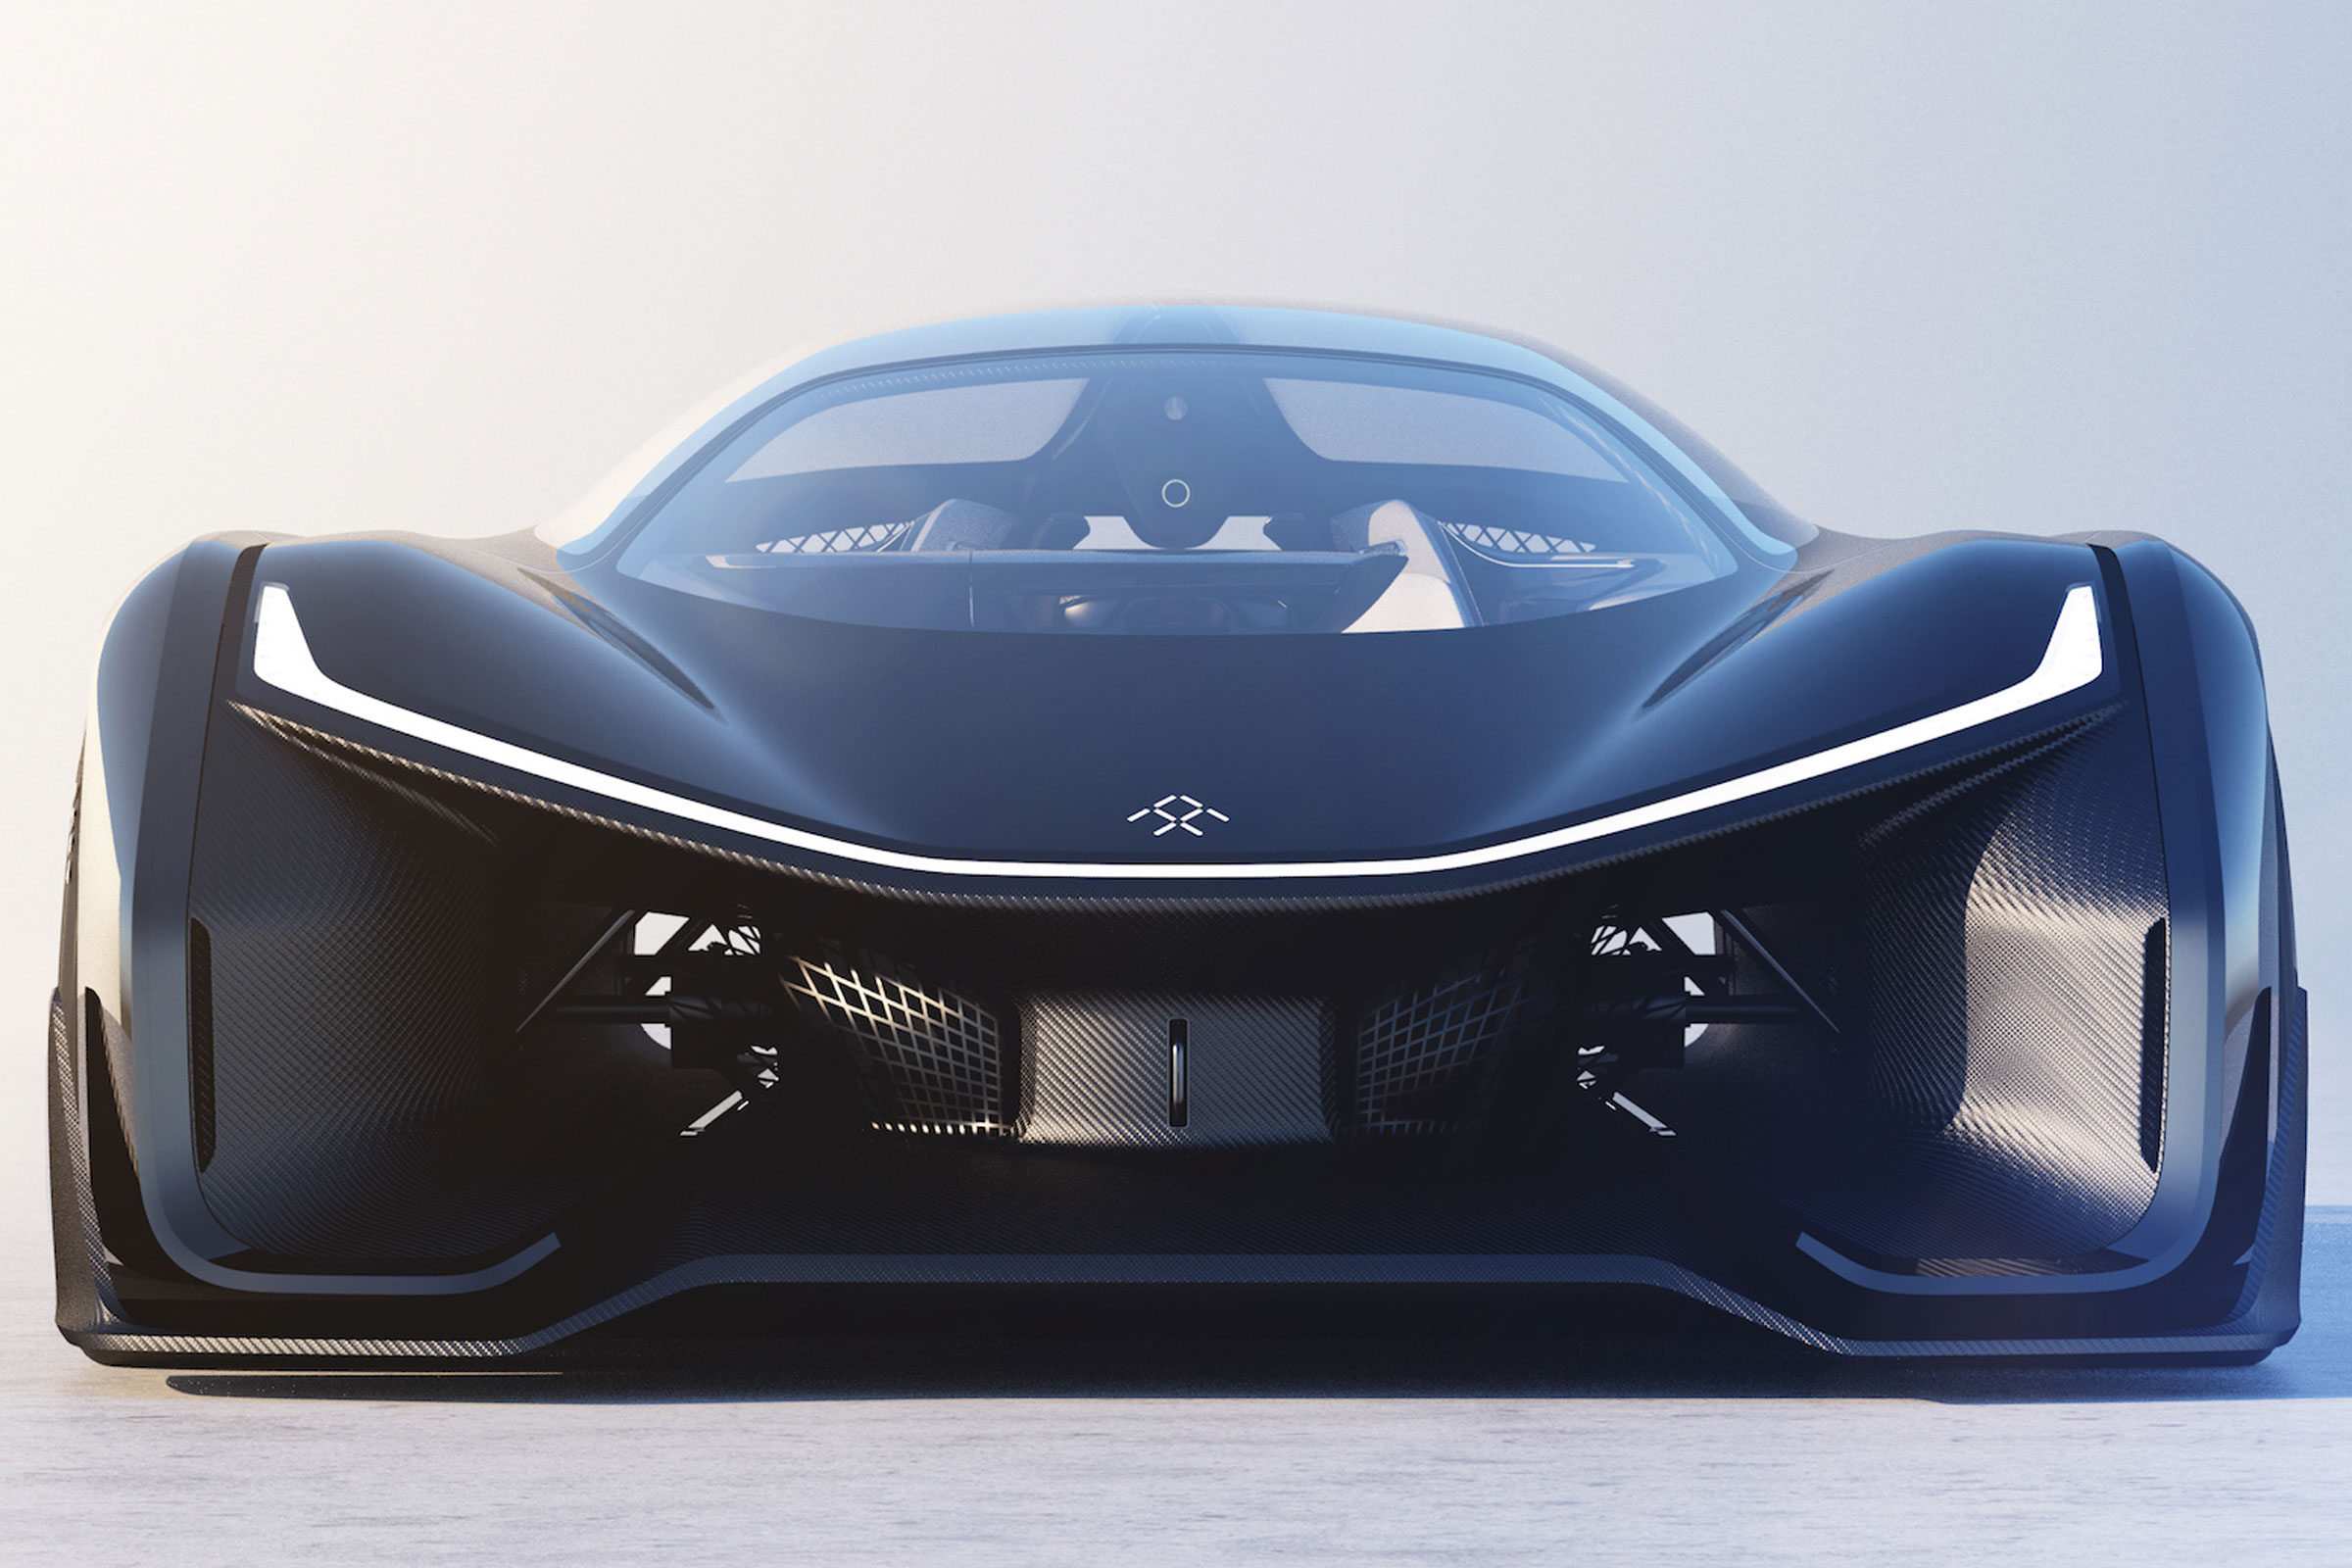 (No) Faraday Future